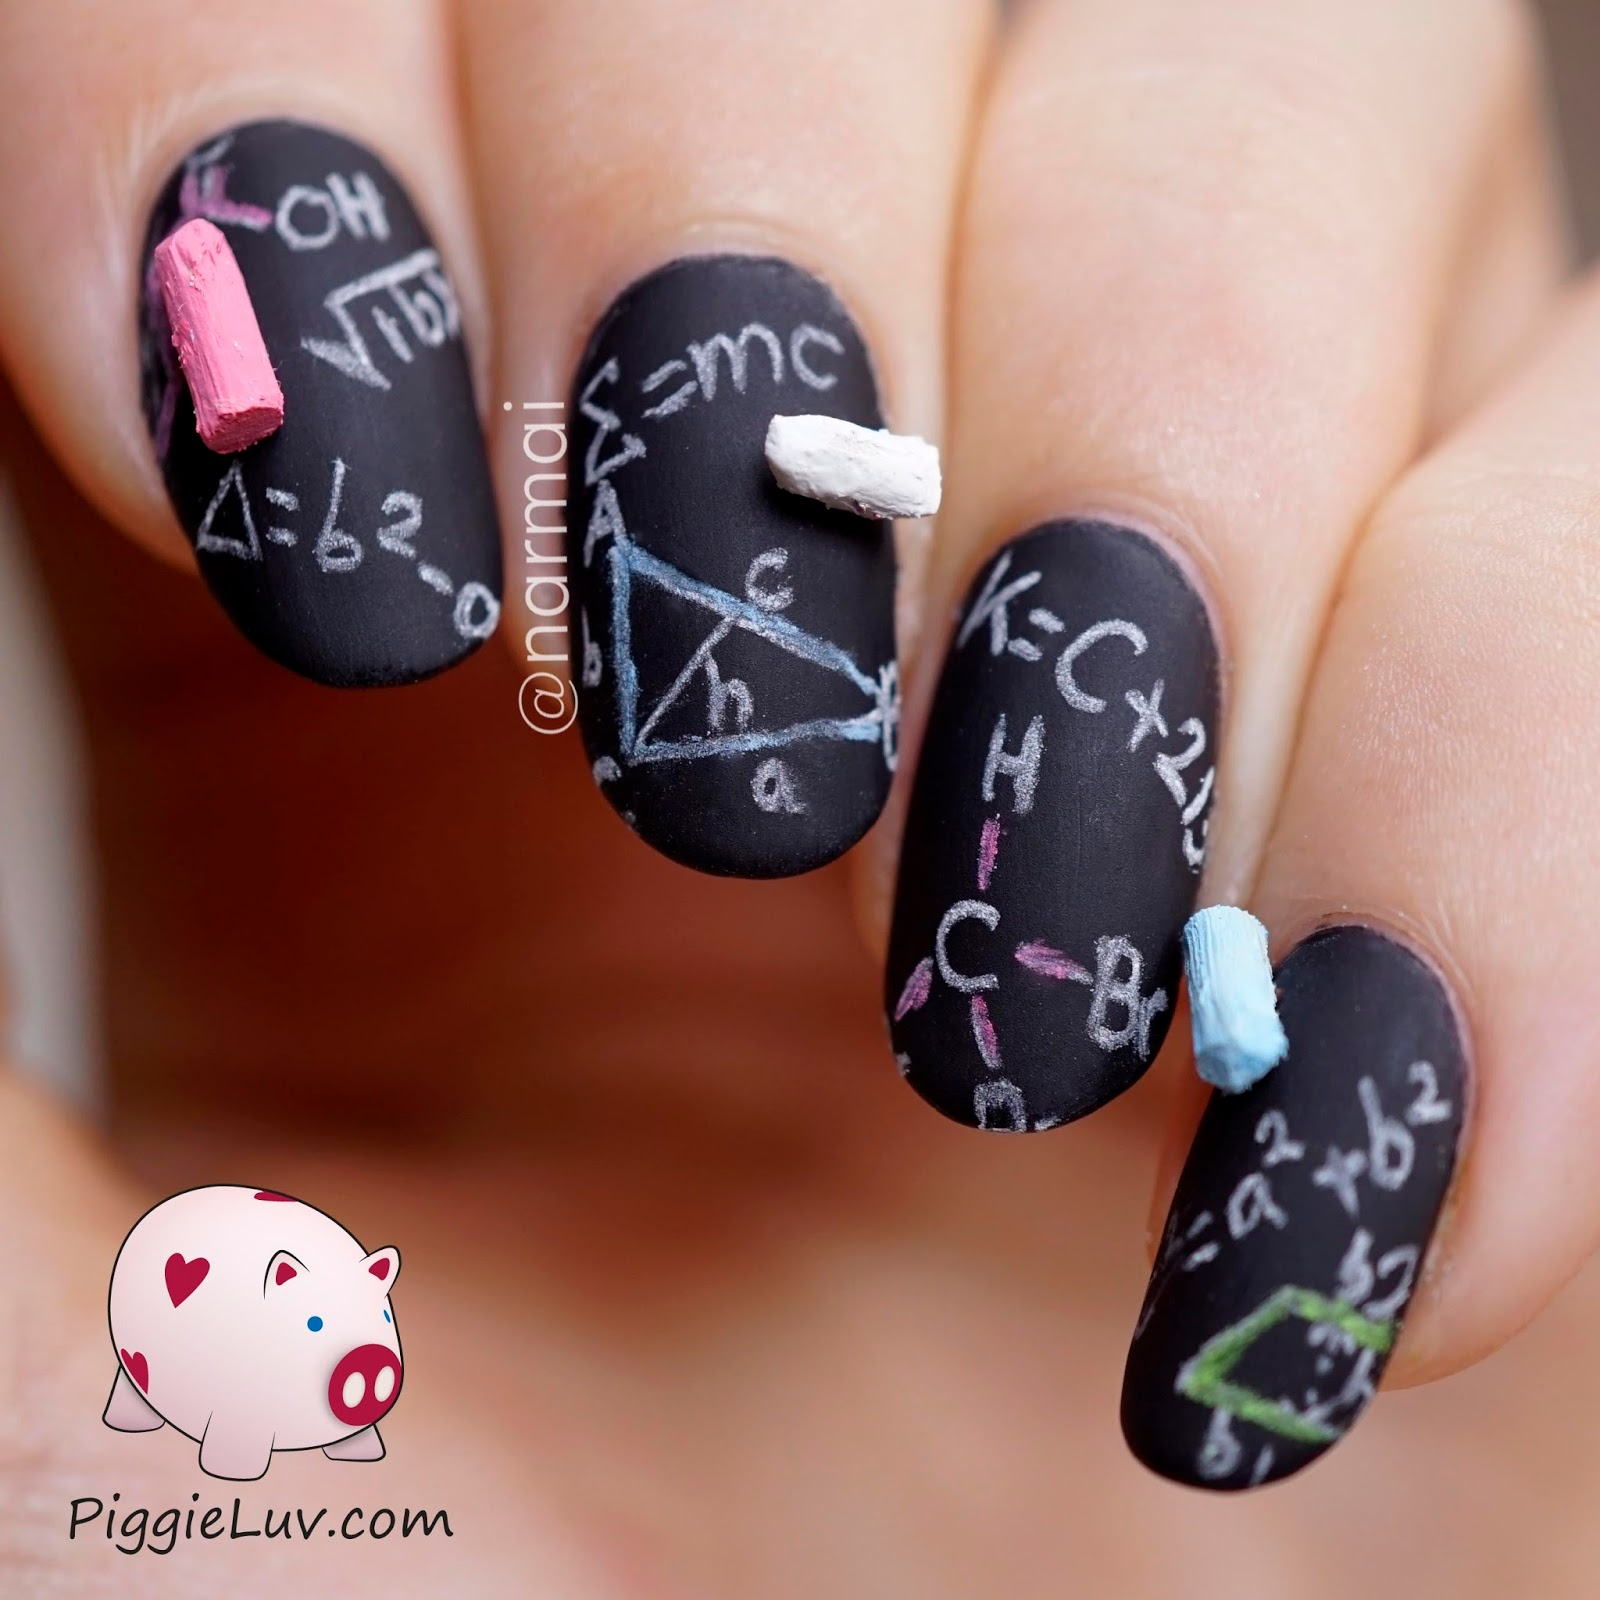 Nail art board image collections nail art and nail design ideas piggieluv 3d chalkboard nail art 3d chalkboard nail art prinsesfo image collections prinsesfo Choice Image